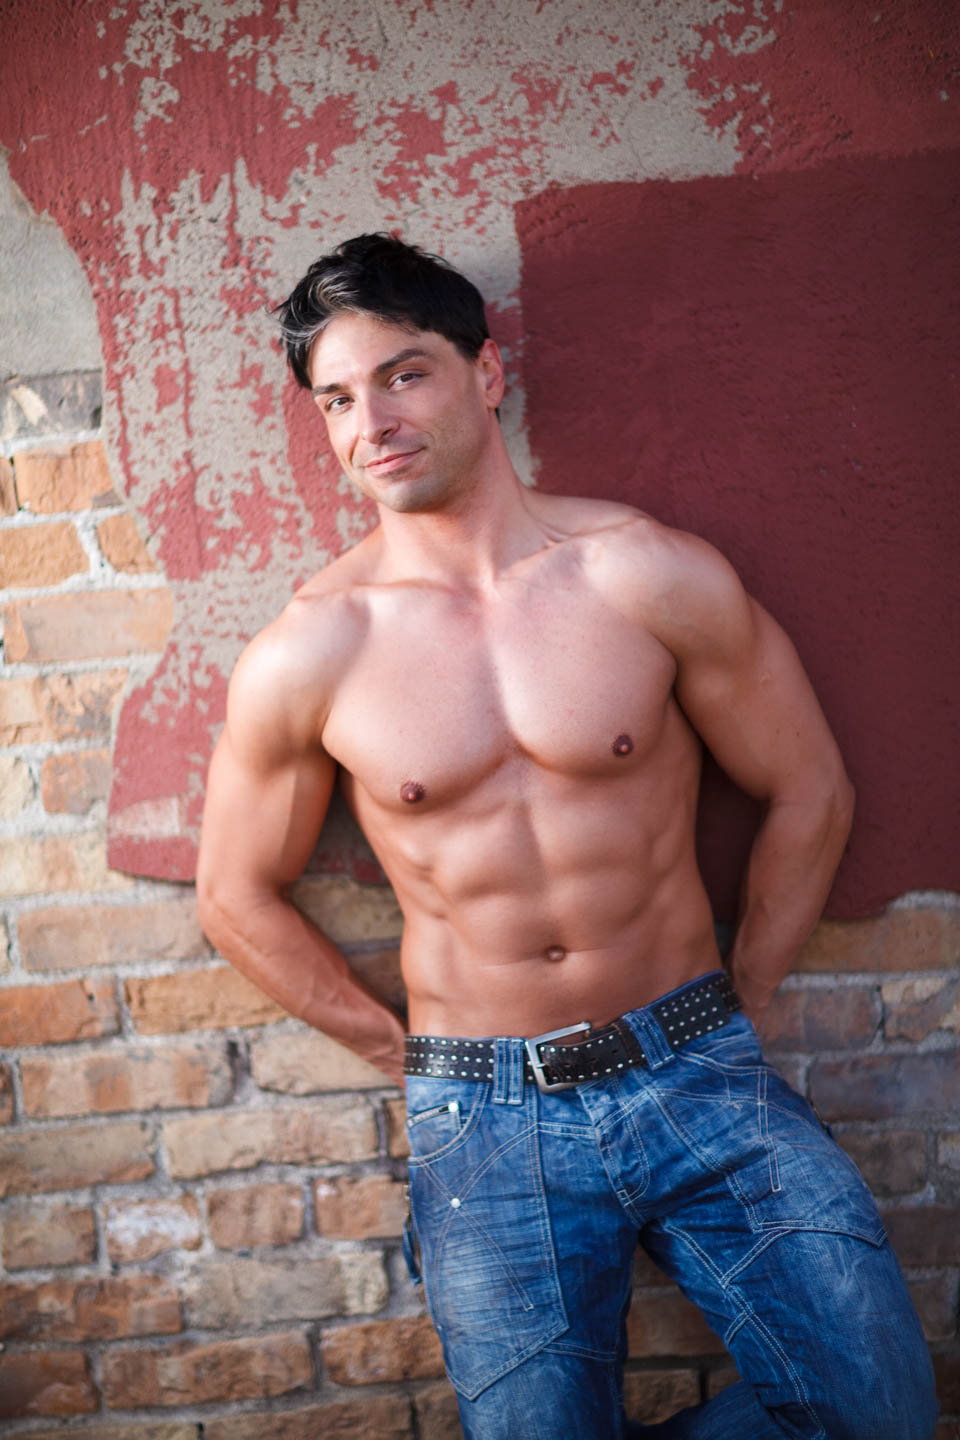 Lighting helps to feature Graham's physique